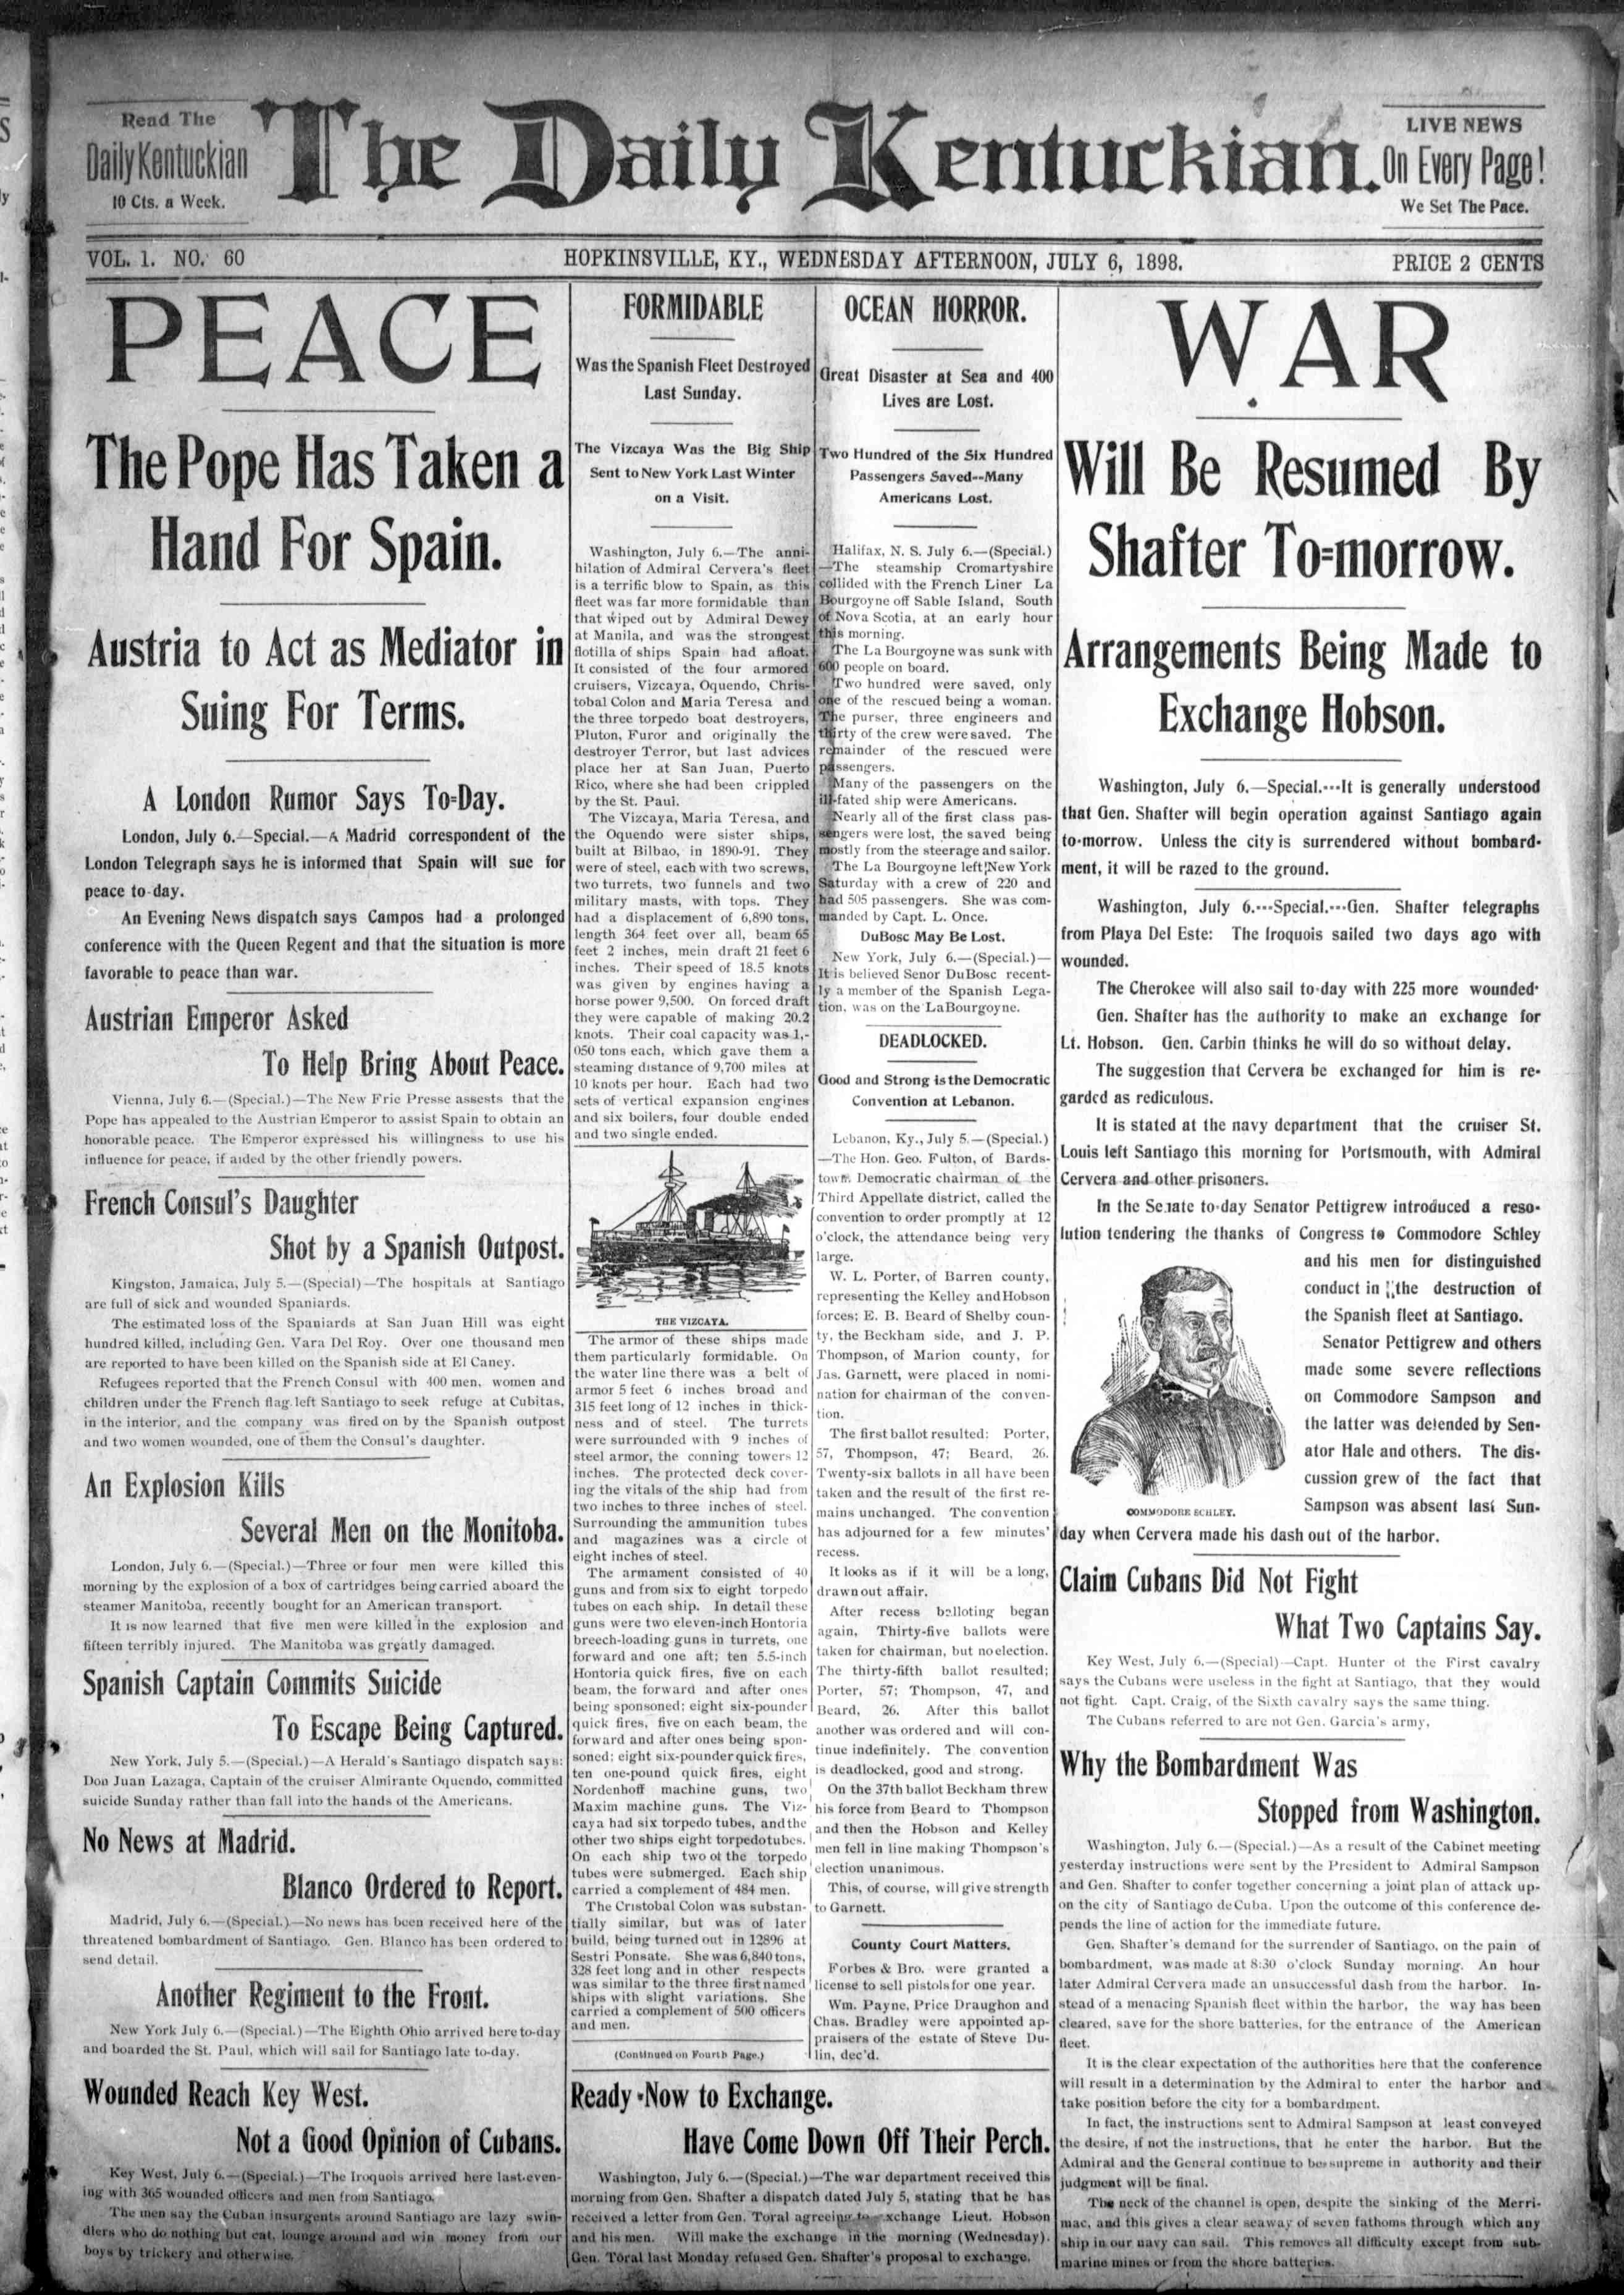 The Daily Kentuckian. (Hopkinsville, Ky.), July 6, 1898. Front page news: The Spanish-American War.